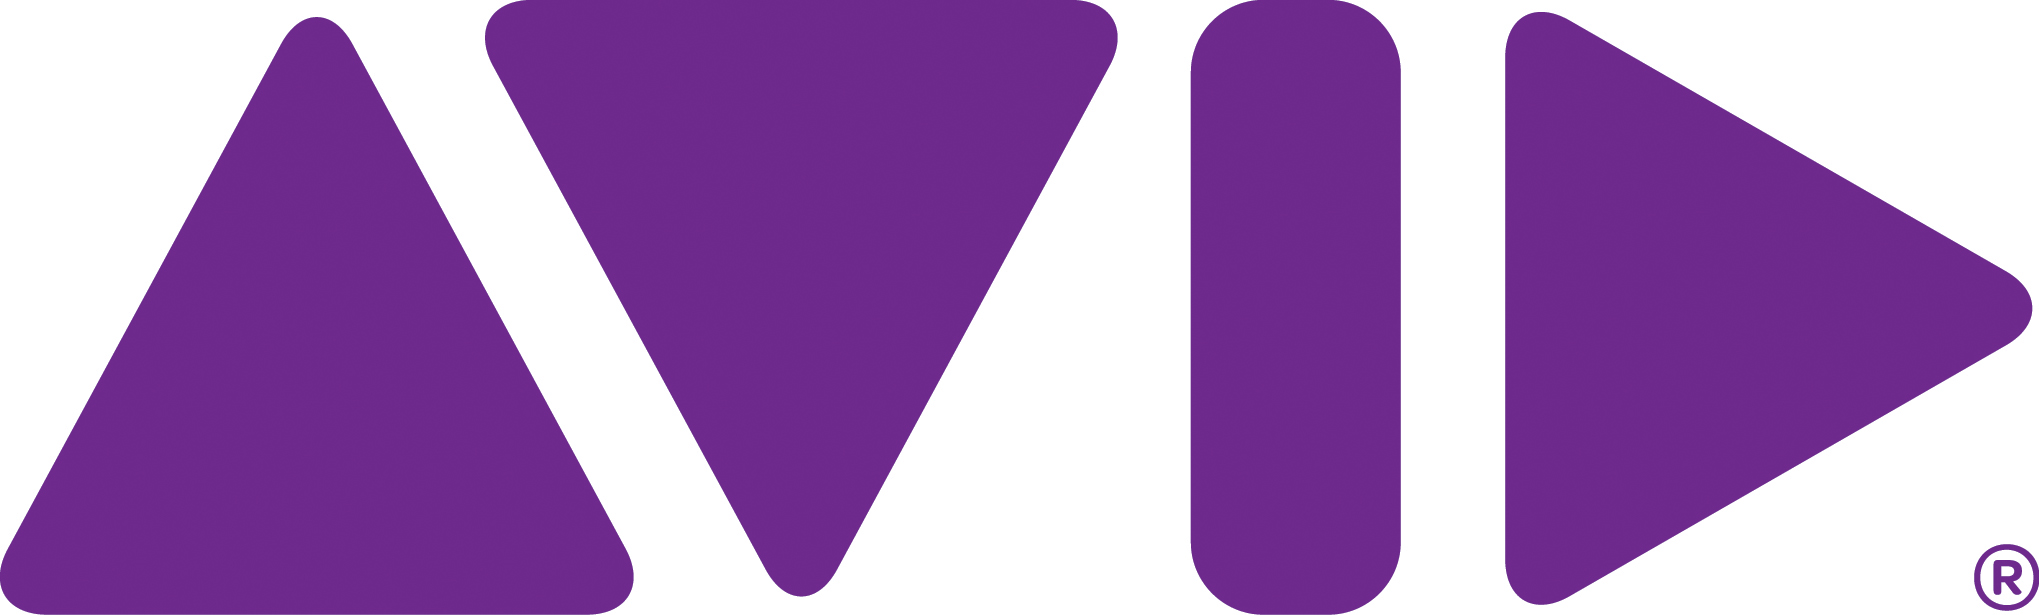 Avid Announces Strategic Cloud Alliance with Microsoft for the Media and Entertainment Industry